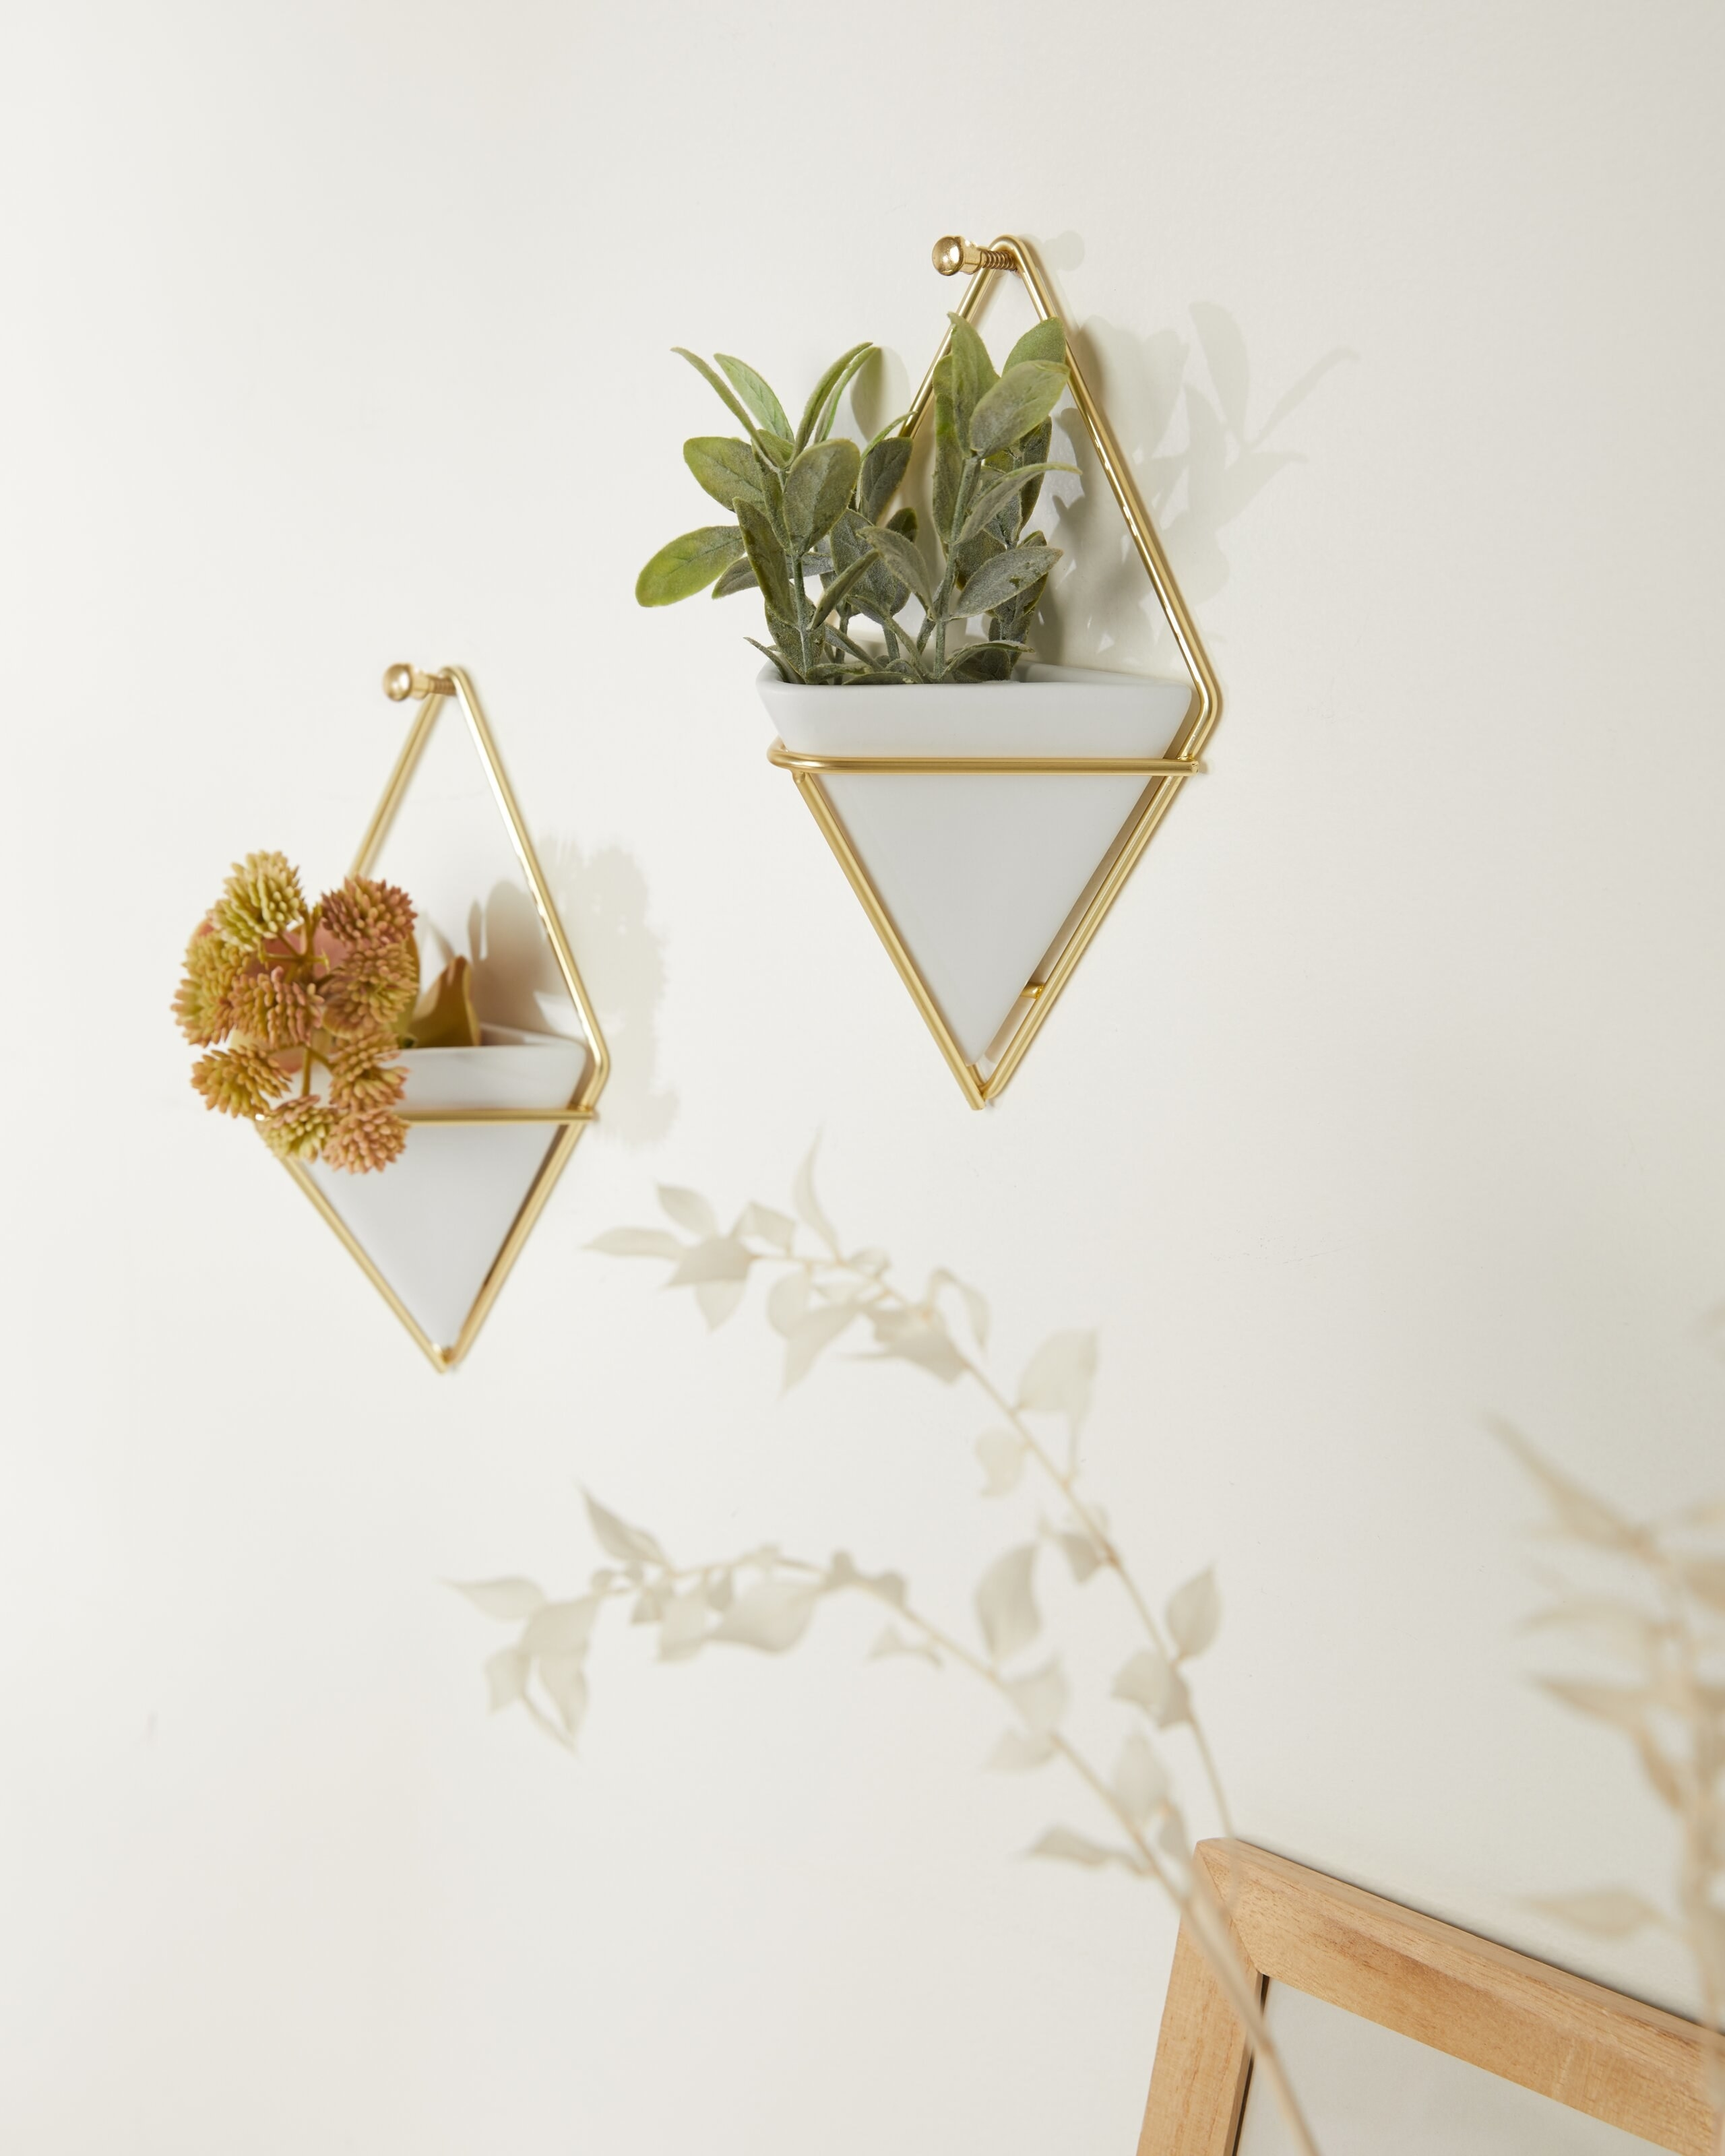 the white vessels in gold braces holding plants on a wall